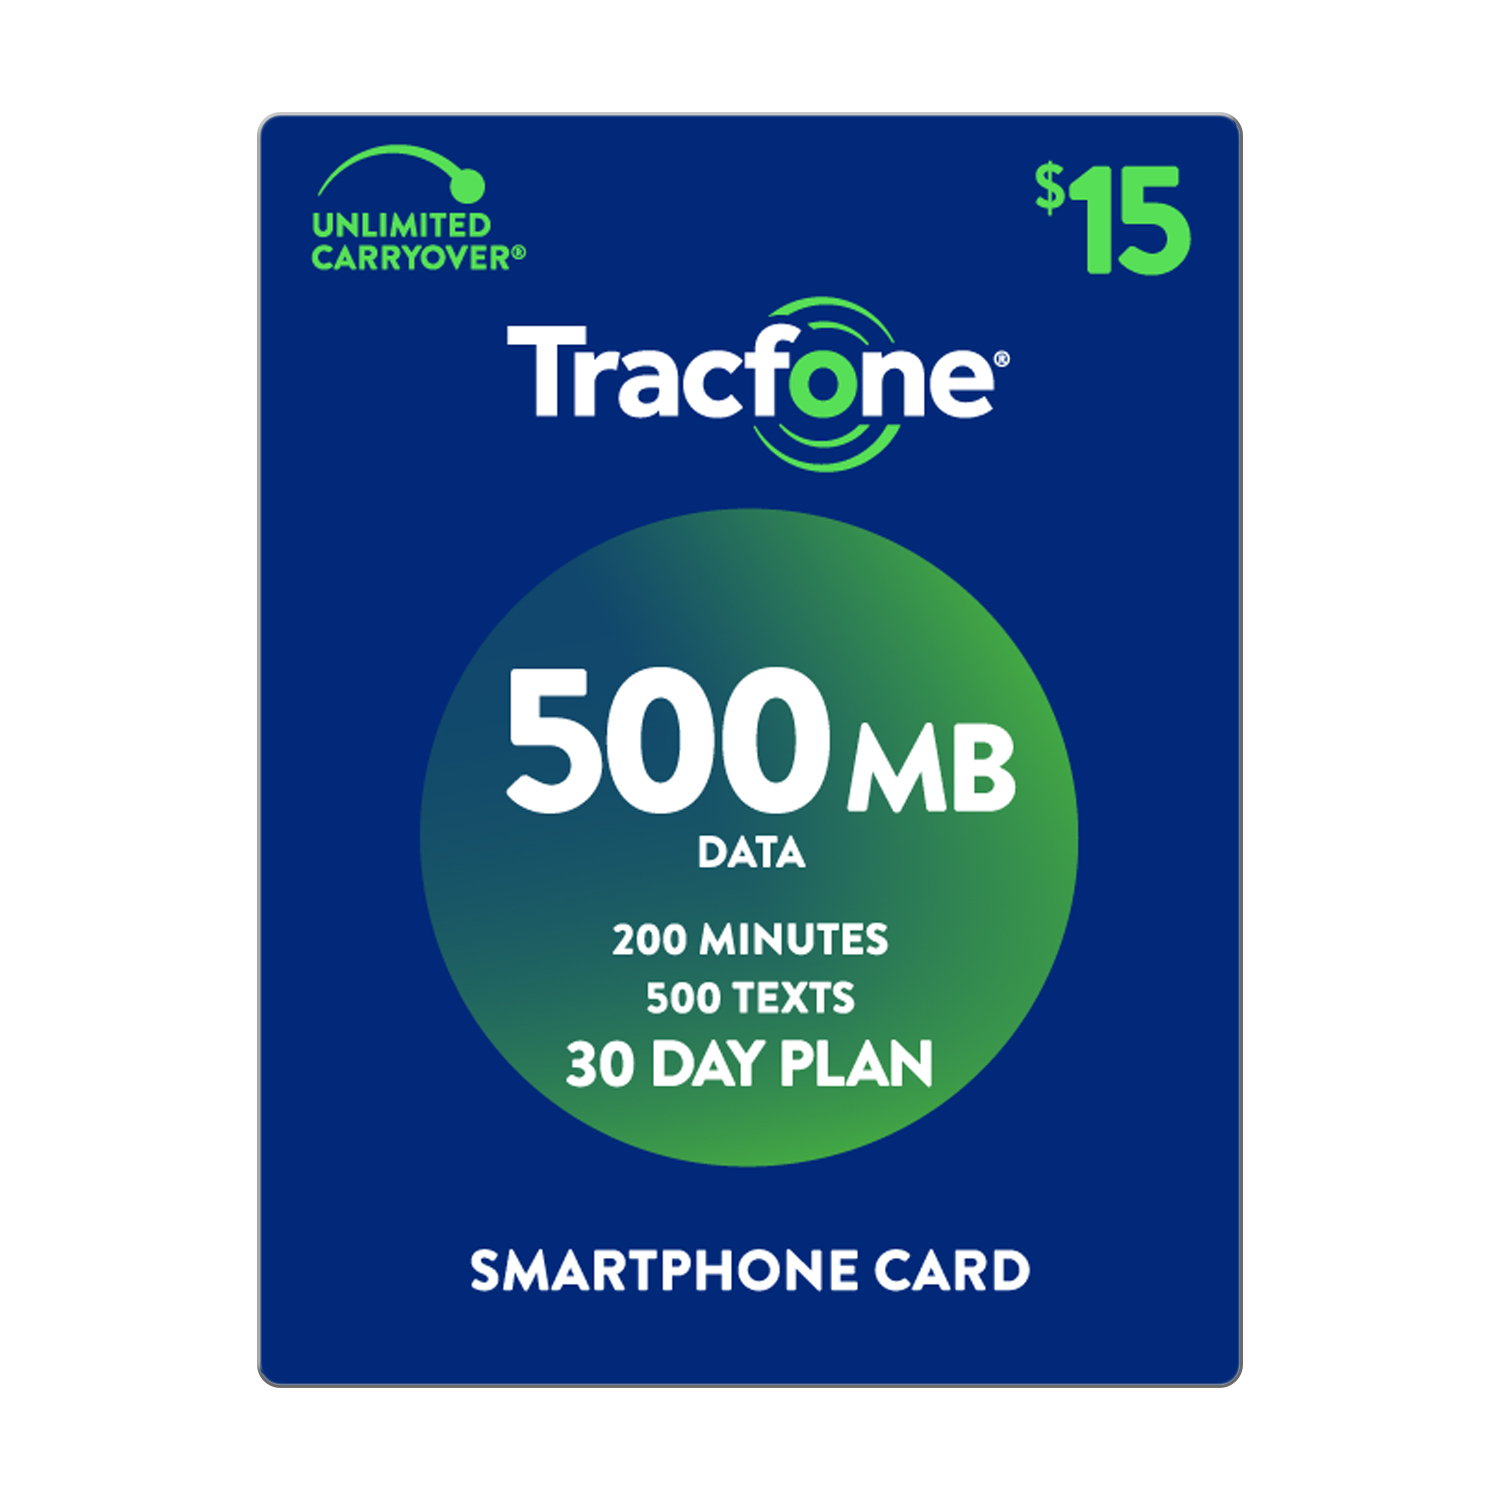 Online dating first email questions on tracfone